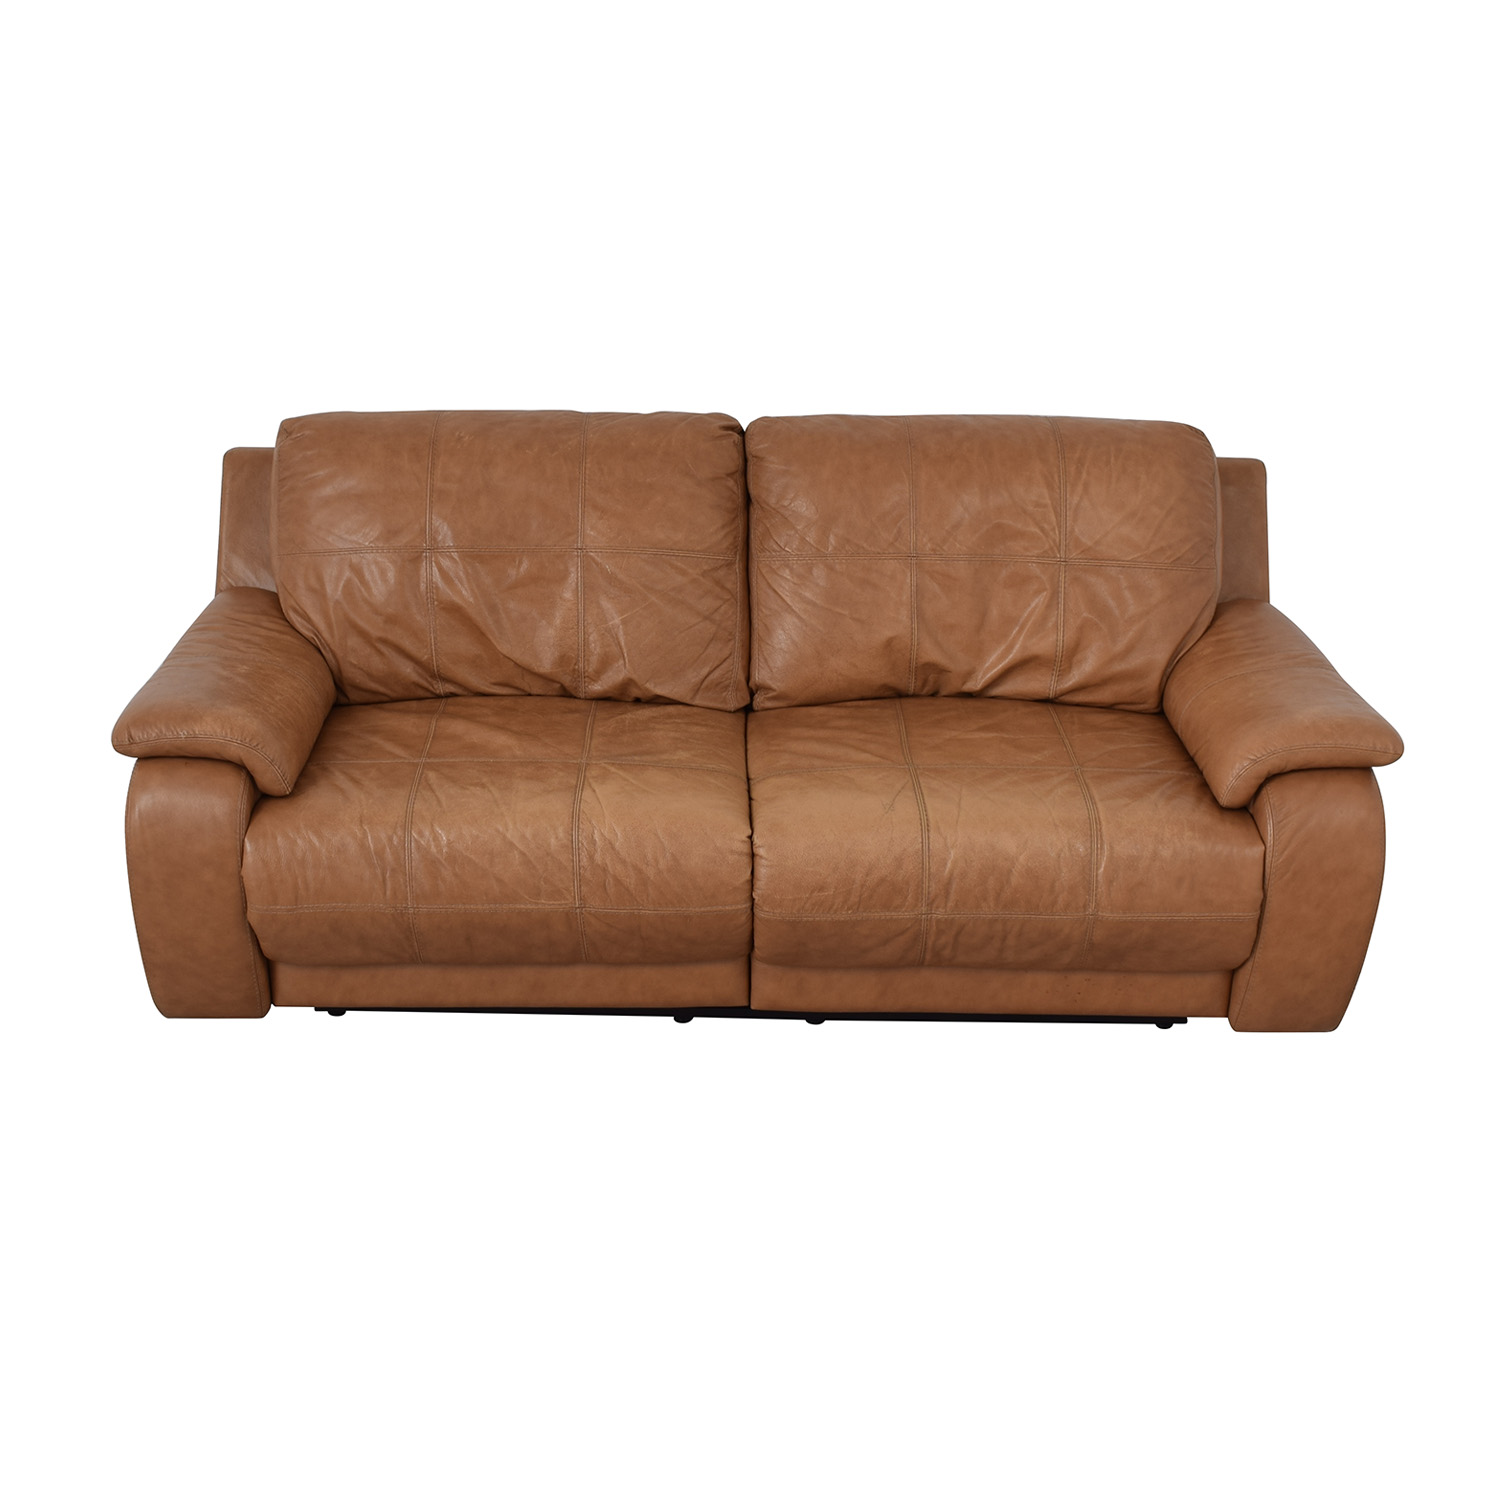 Super 90 Off Leather Reclining Loveseat Sofas Andrewgaddart Wooden Chair Designs For Living Room Andrewgaddartcom